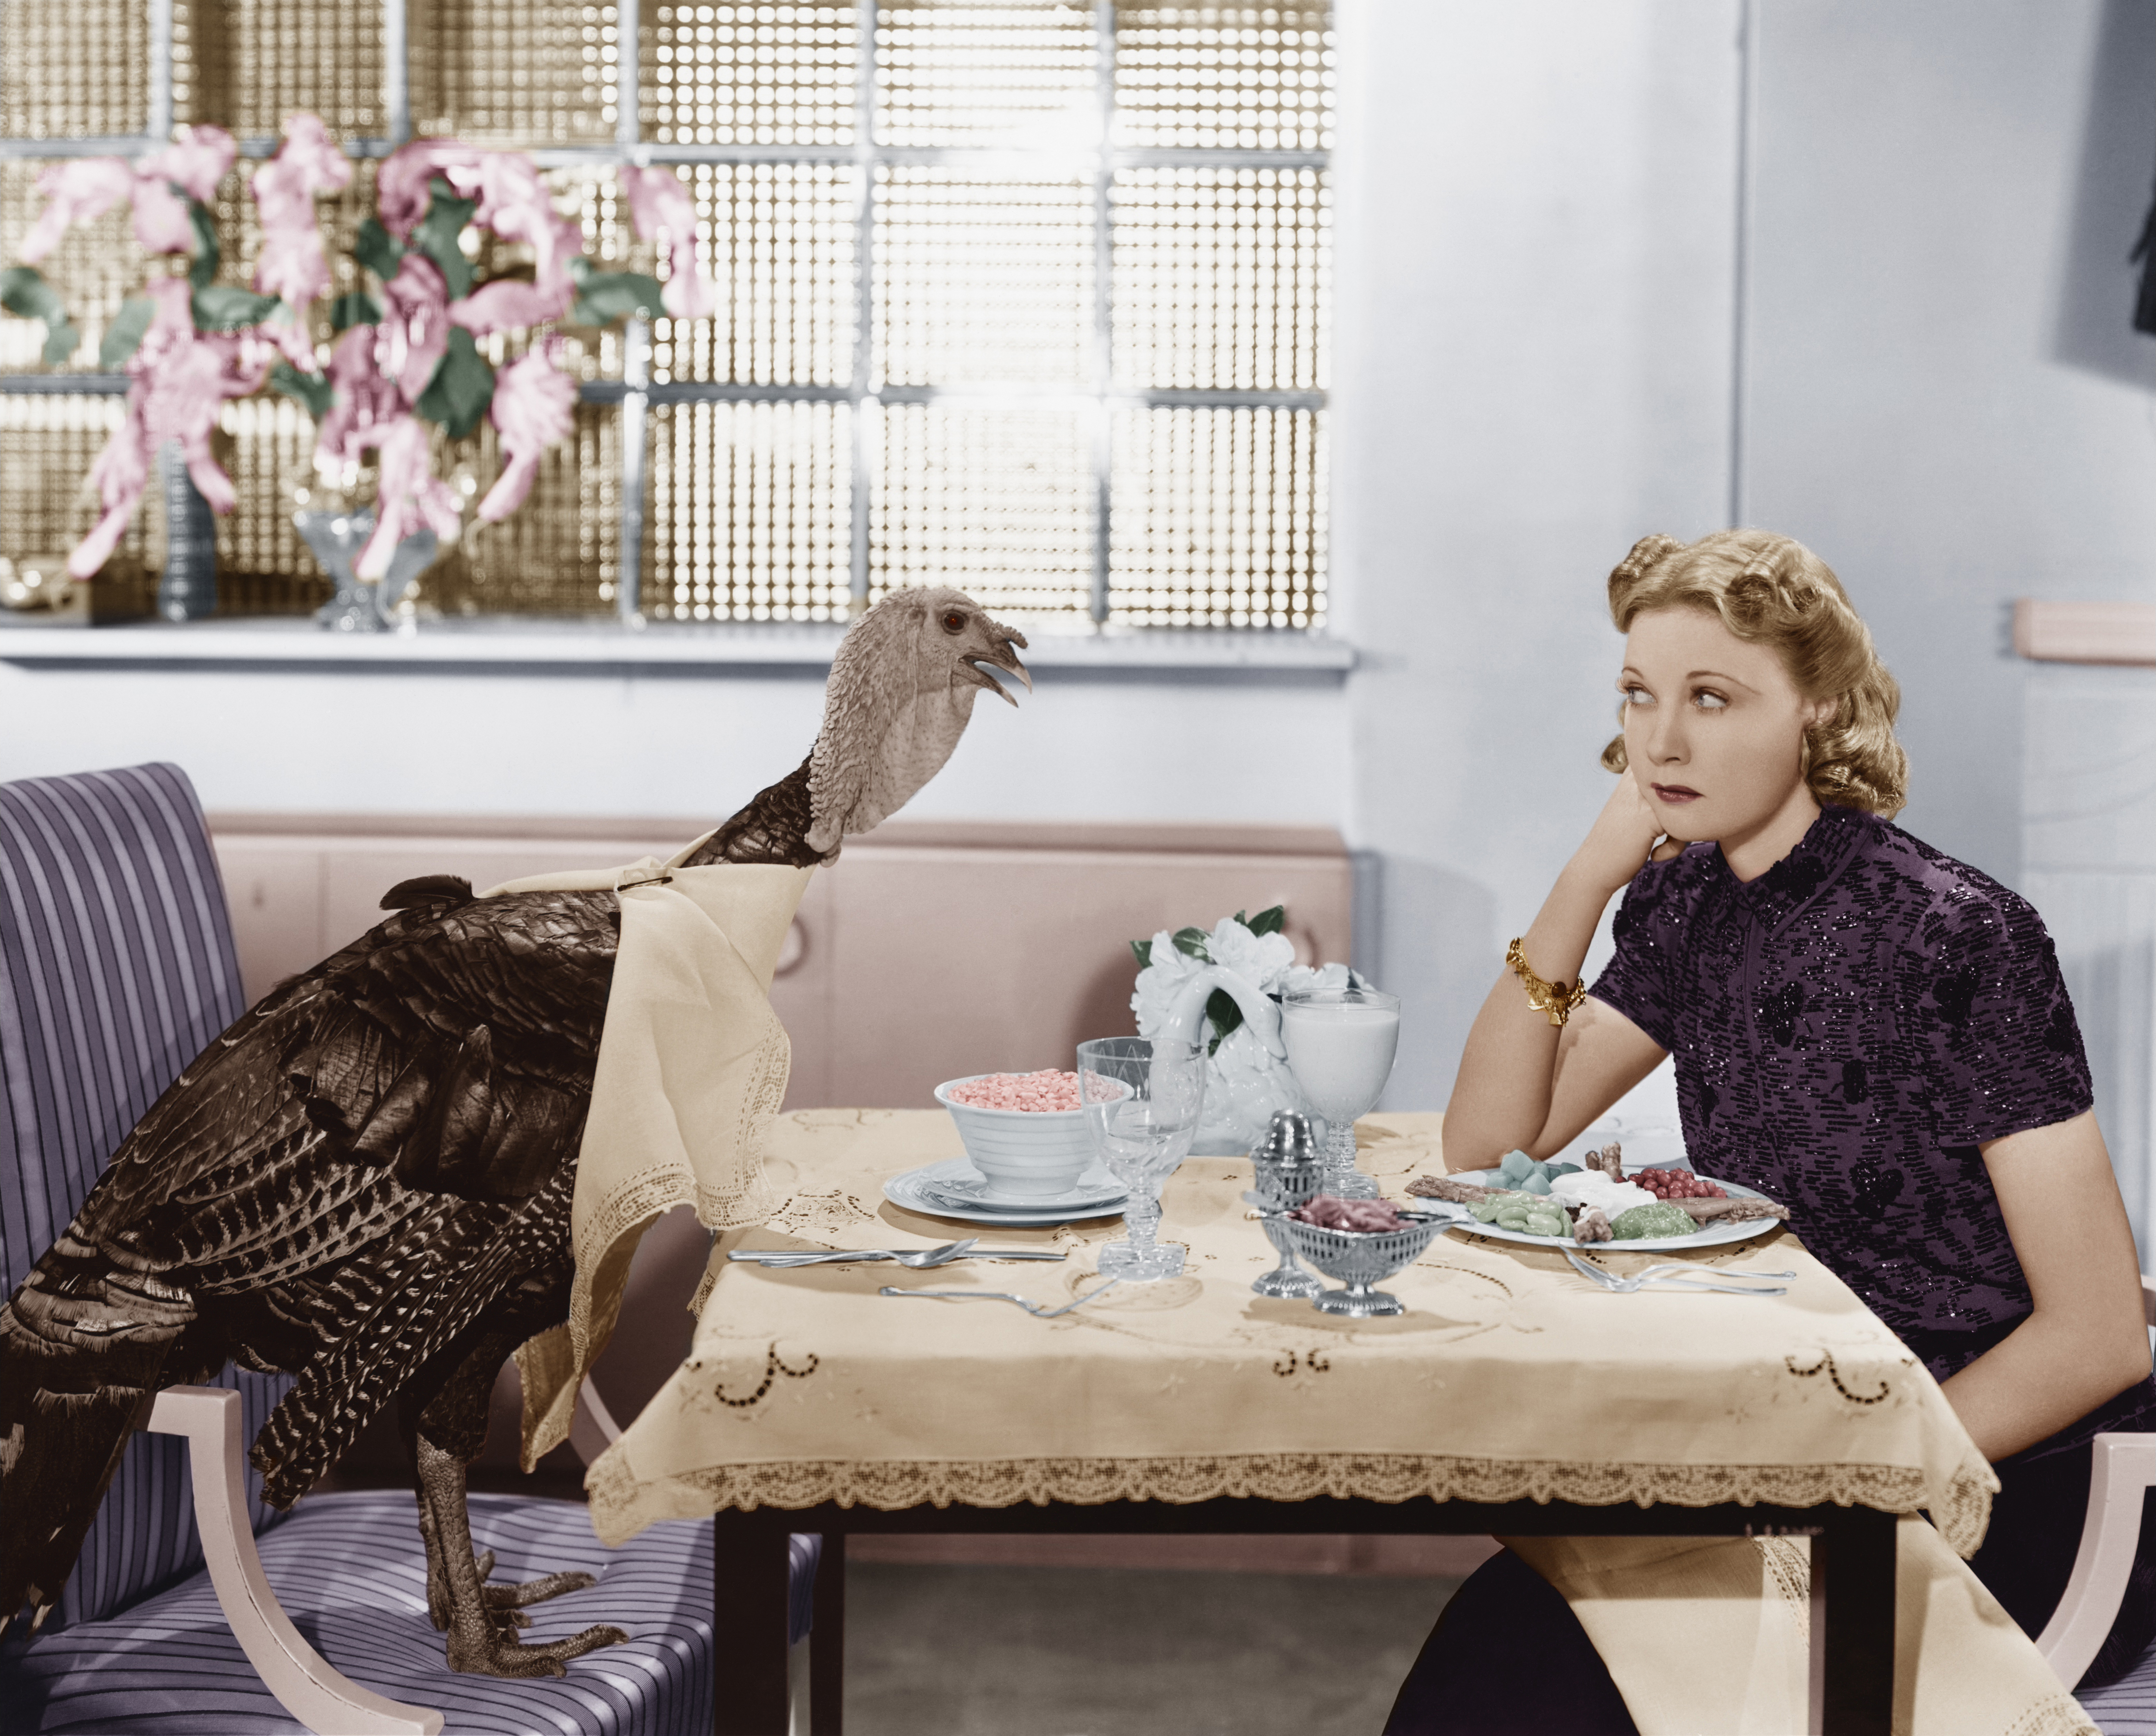 A vintage photo of a woman seated at a dinner table across from a live turkey